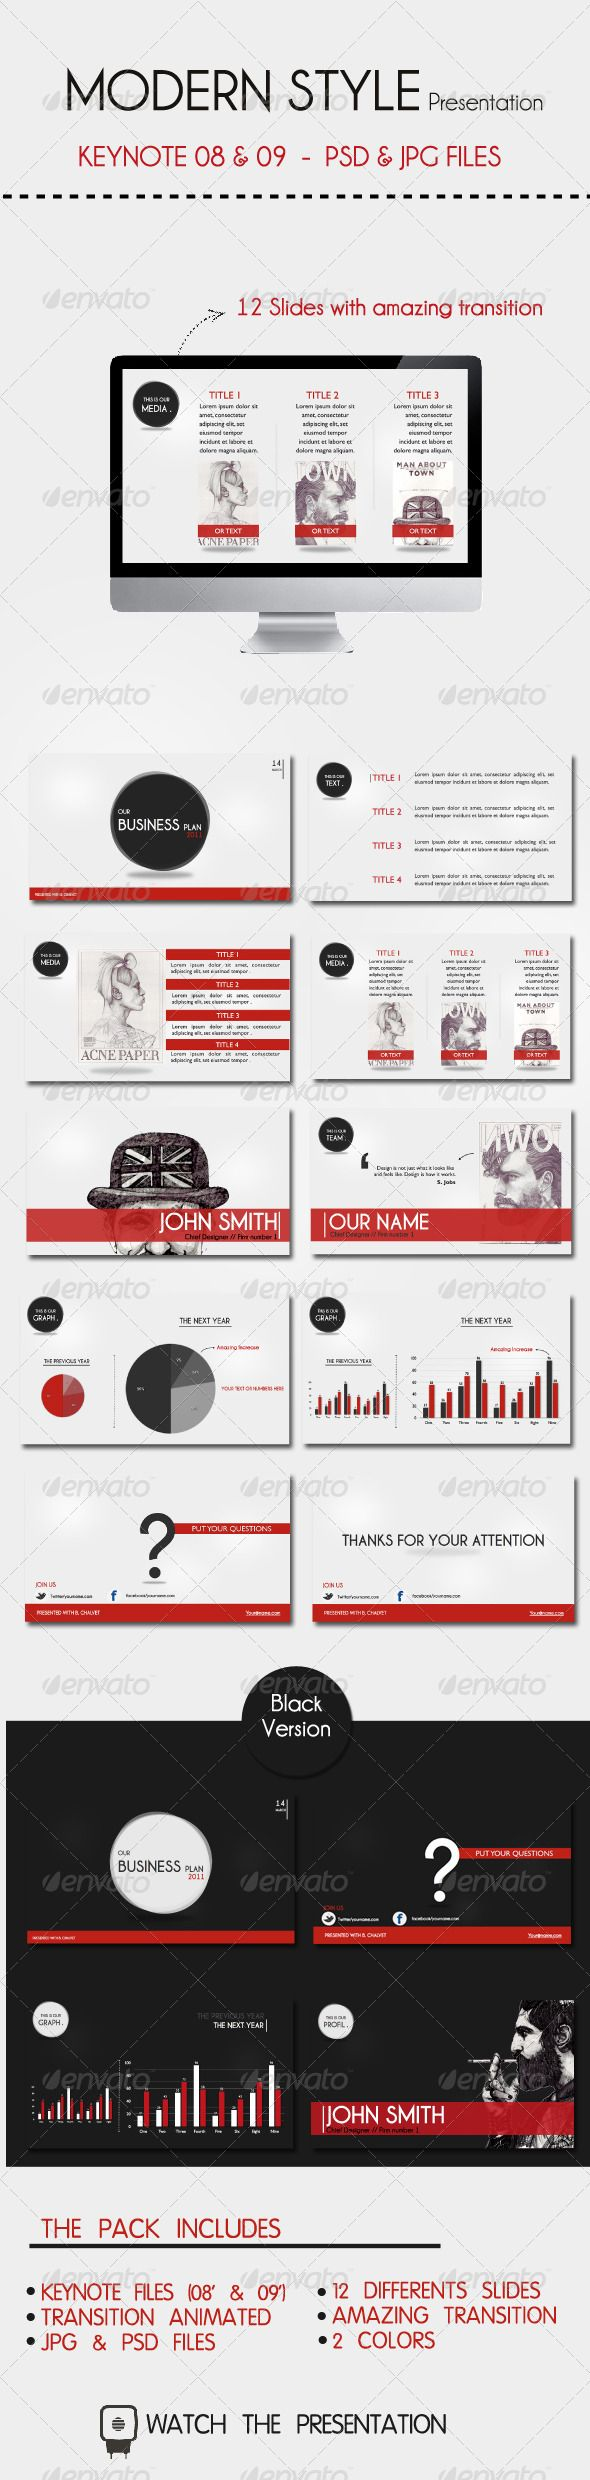 124 best keynote themes templates images on pinterest modern style presentation keynote theme template business presentationpresentation designpresentation cheaphphosting Image collections